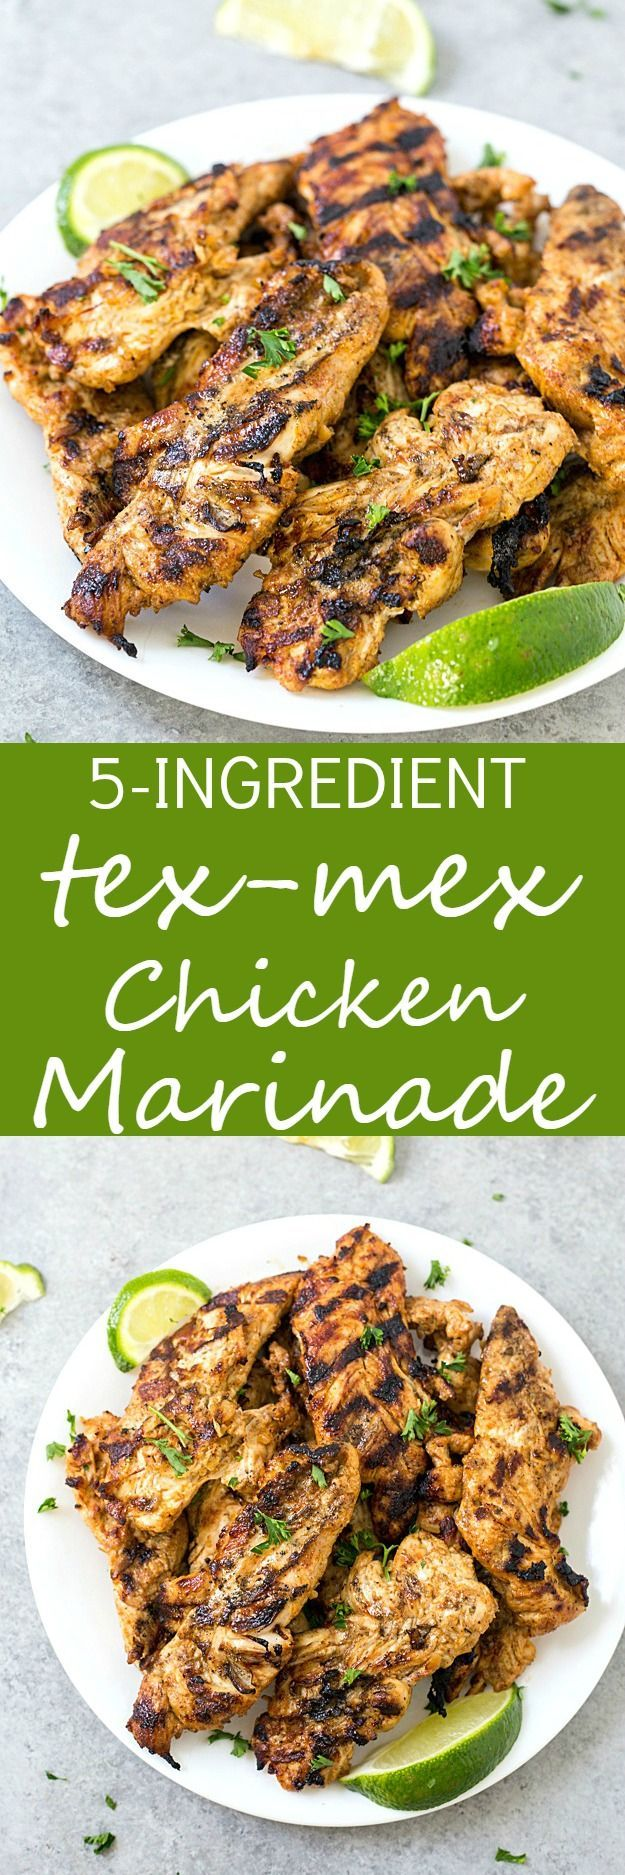 5-Ingredient Tex-Mex Chicken Marinade - The absolutely best chicken marinade with only 5 ingredients! This marinade produces so much flavor…